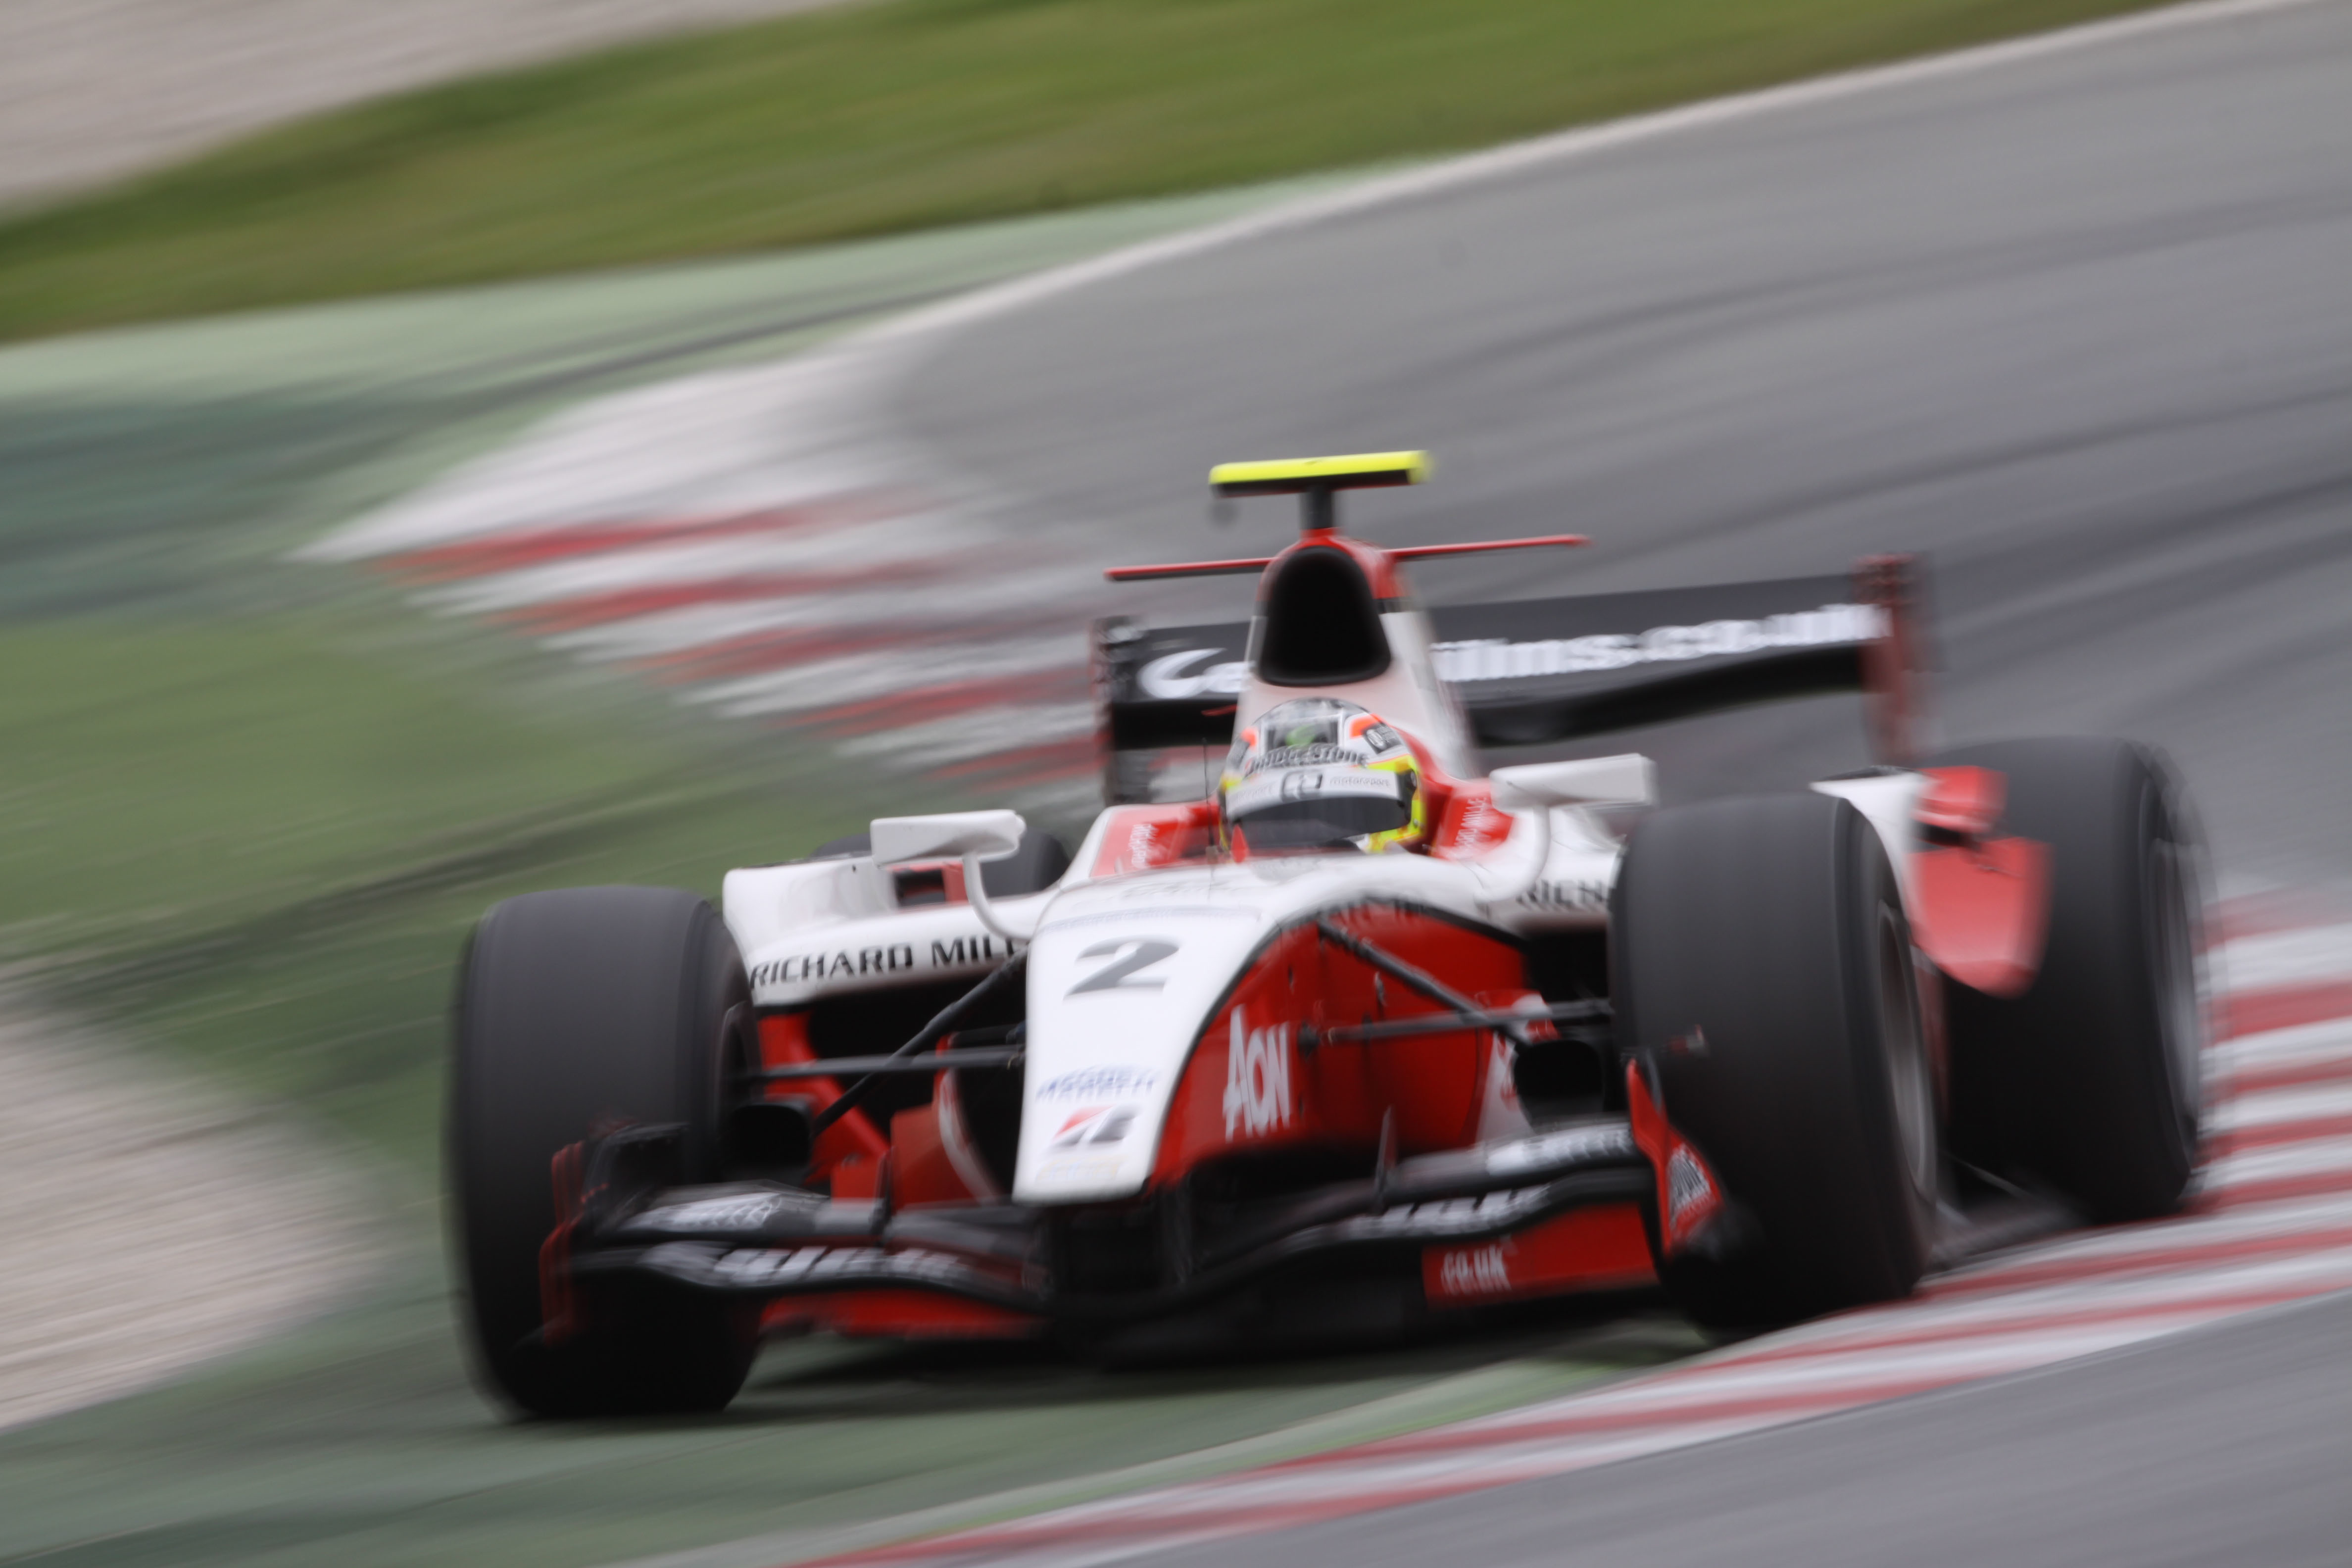 cars formula one Car HD Wallpaper